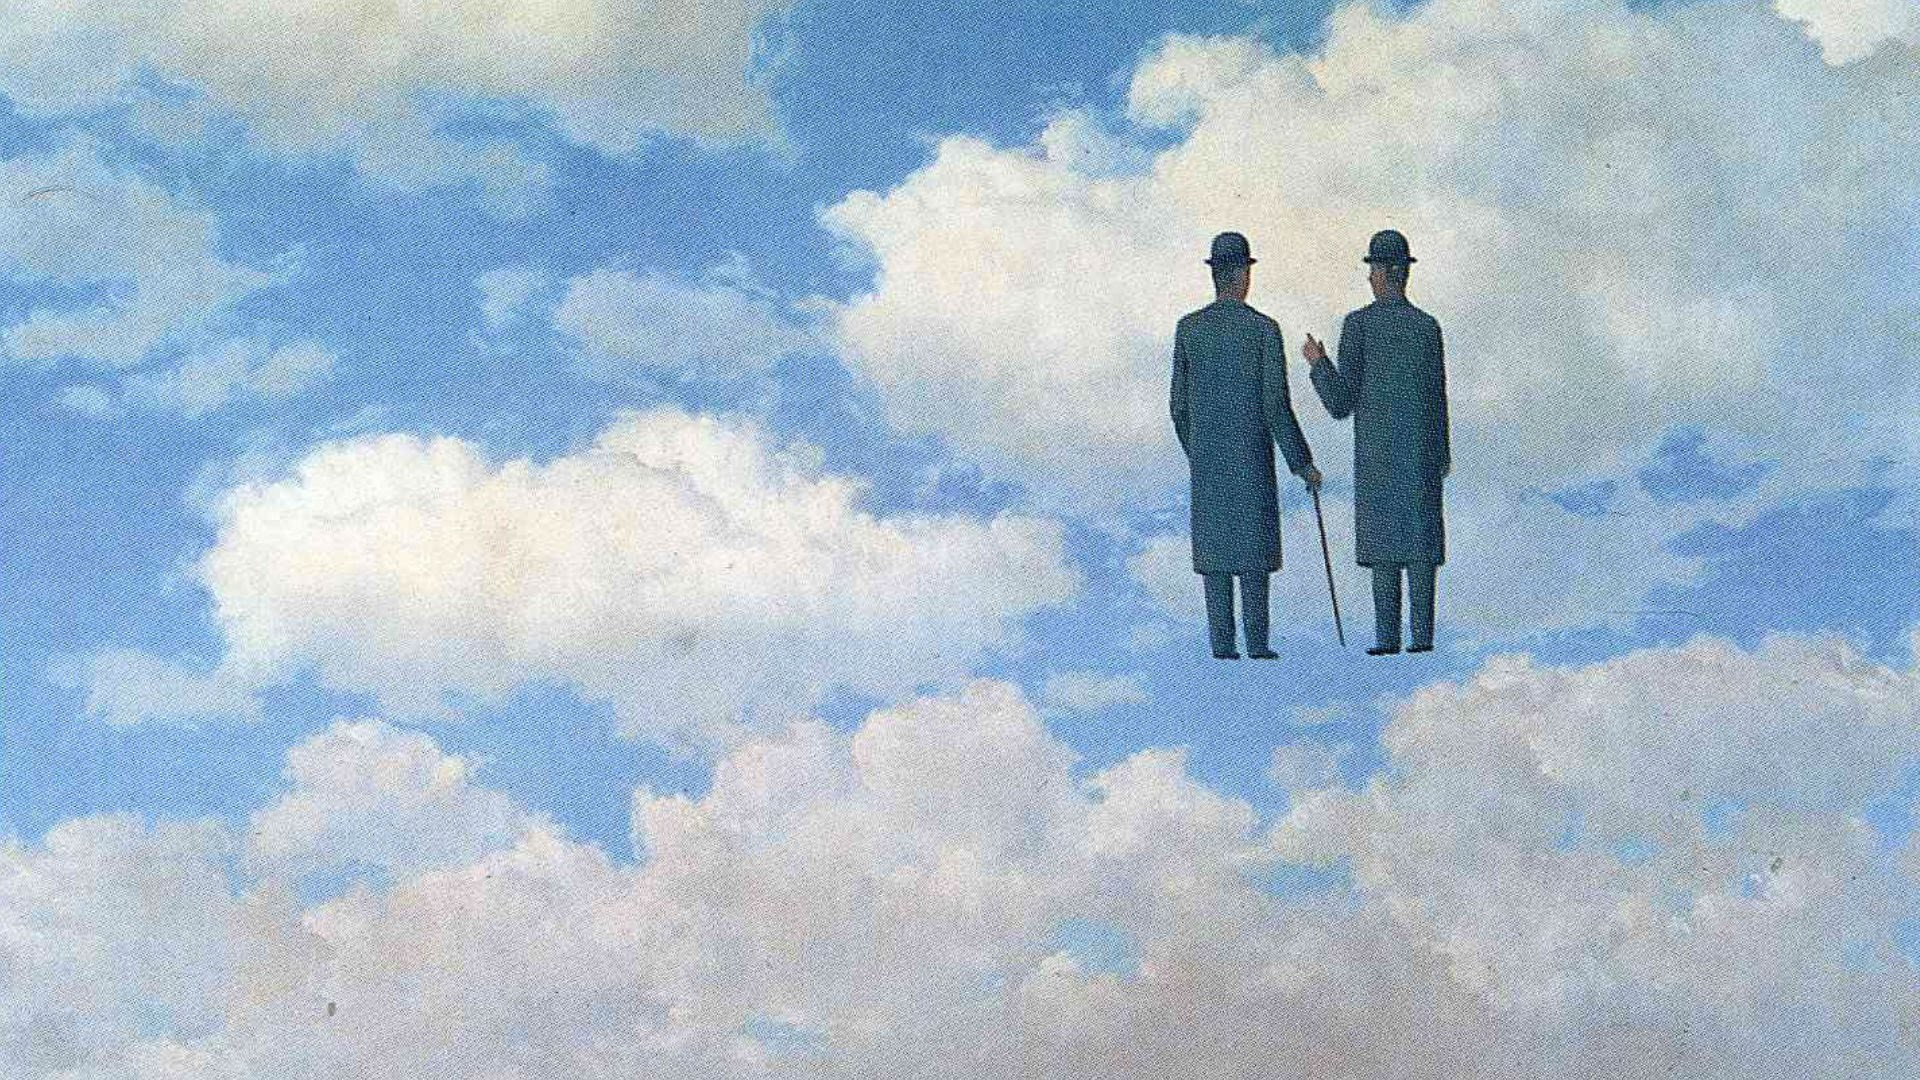 Res: 1920x1080, Art & Creative Wallpapers. Download the following Rene Magritte ...